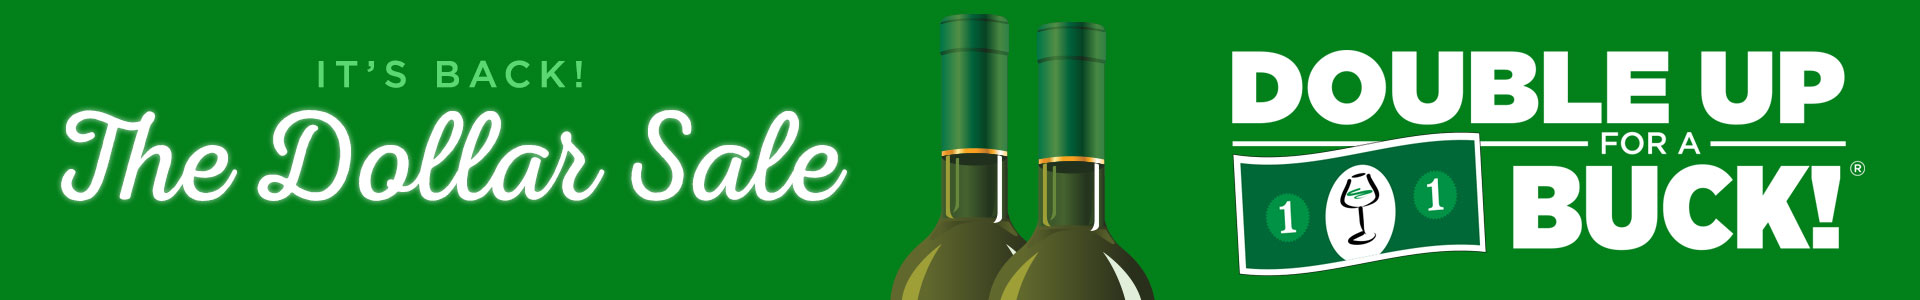 The Dollar Sale is back at Premier! For a limited time, Double Up for a Buck on over 100 select wines!